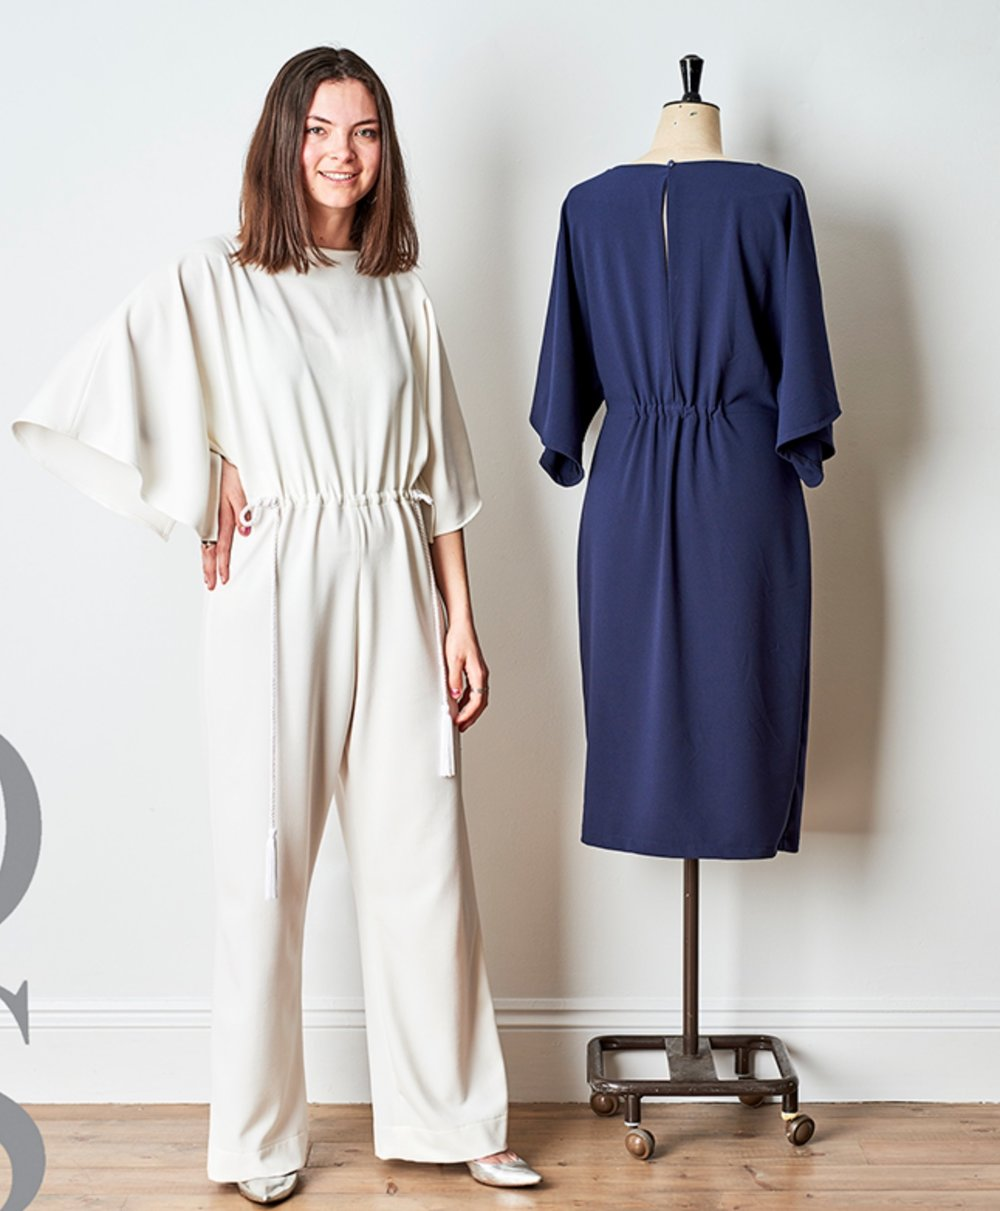 Madeline Robertson Jumpsuit/Dress from the Maker's Atelier